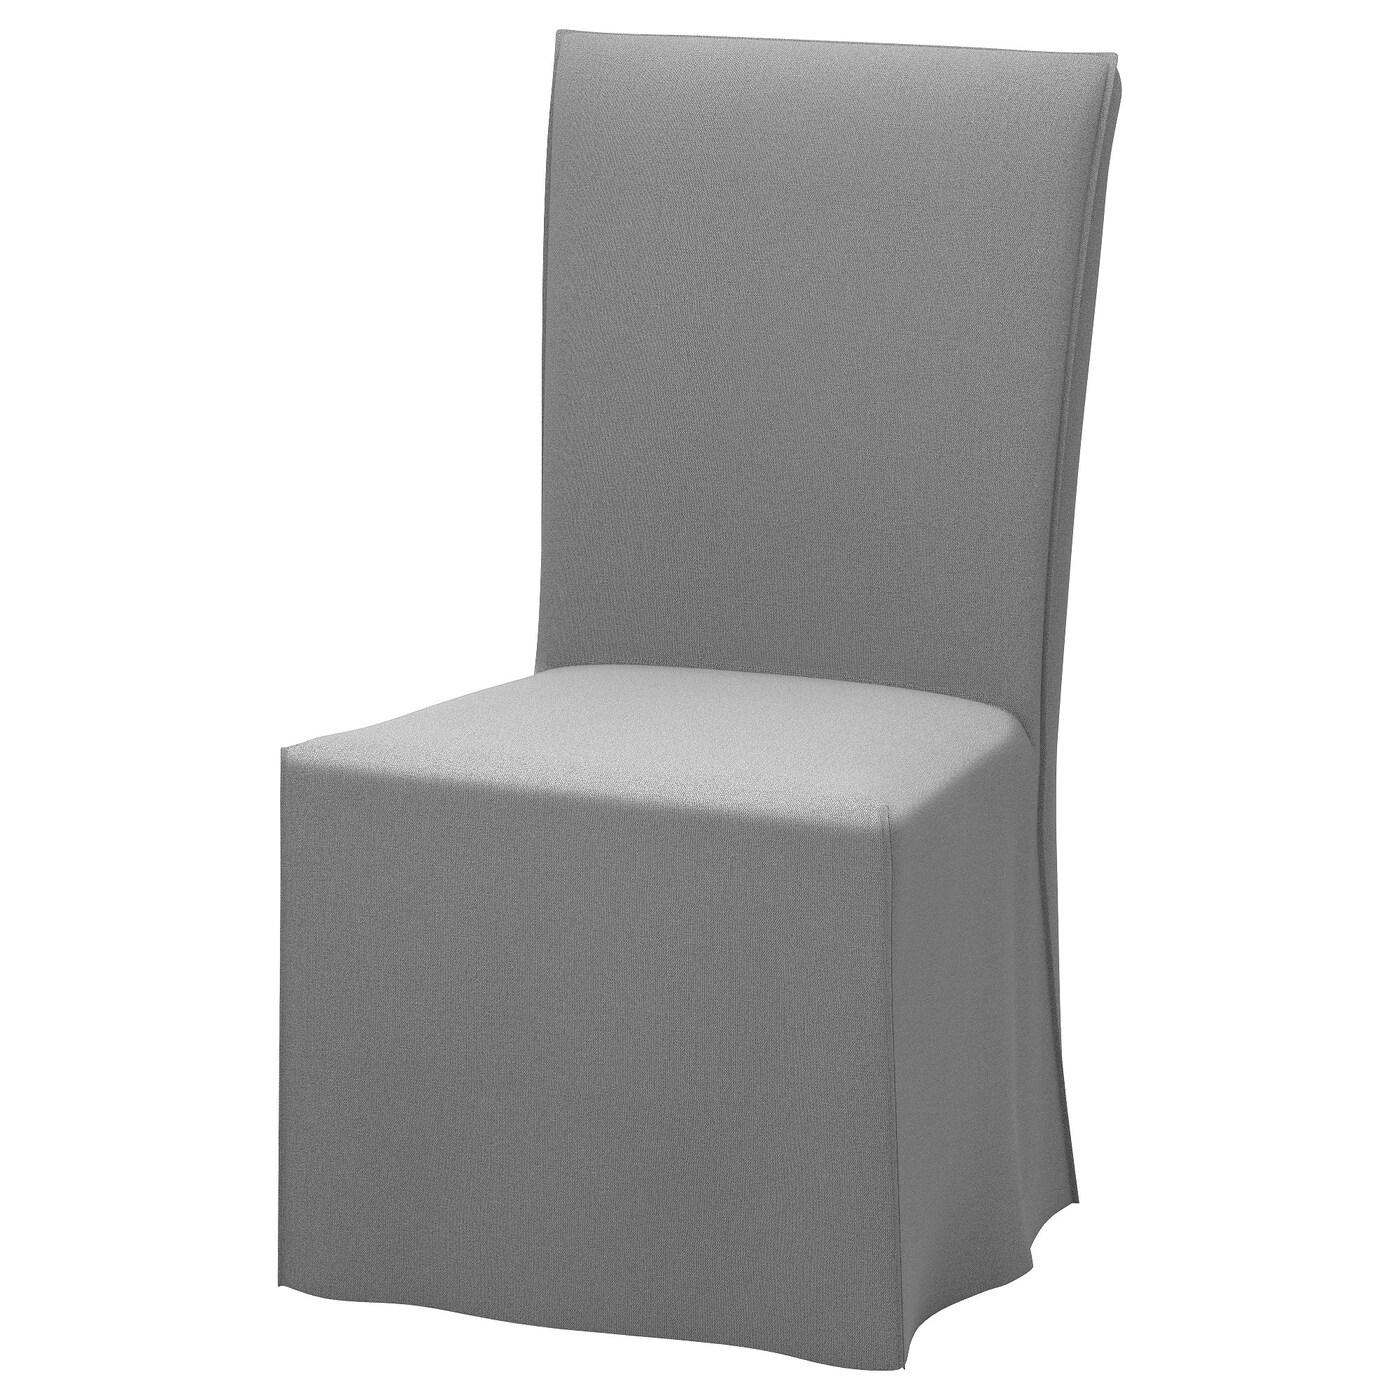 pink chair covers ikea tall vanity henriksdal with long cover dark brown risane grey